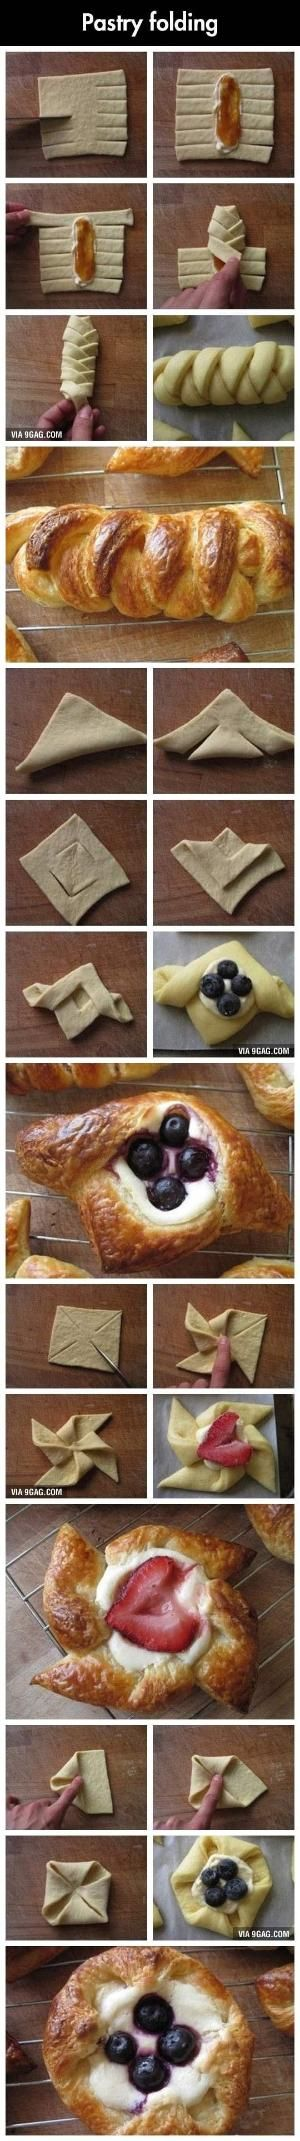 Awesome Dessert Designs- Pastry folding by connie